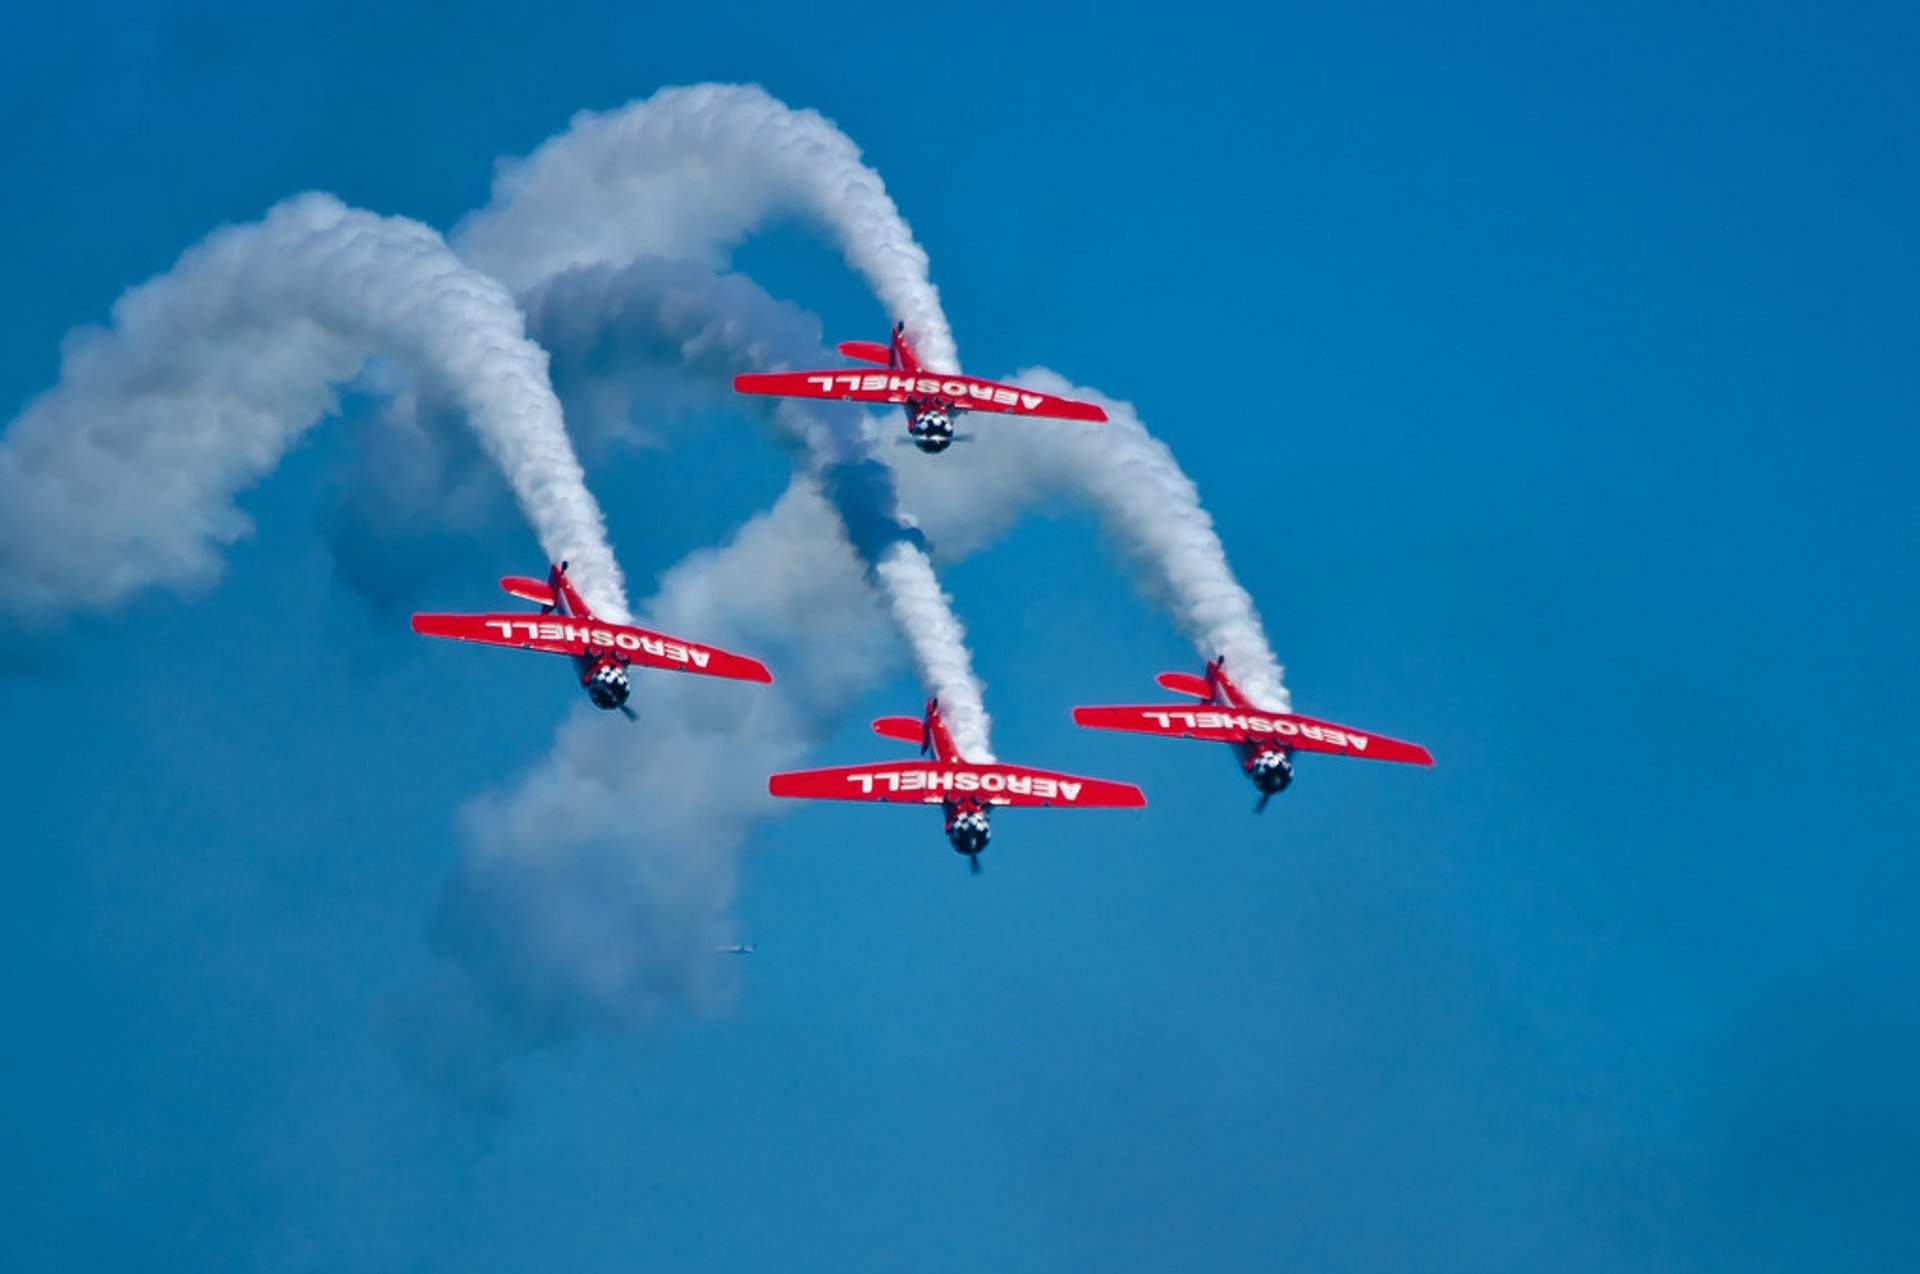 Aeroshell Aerobatic Team 2020